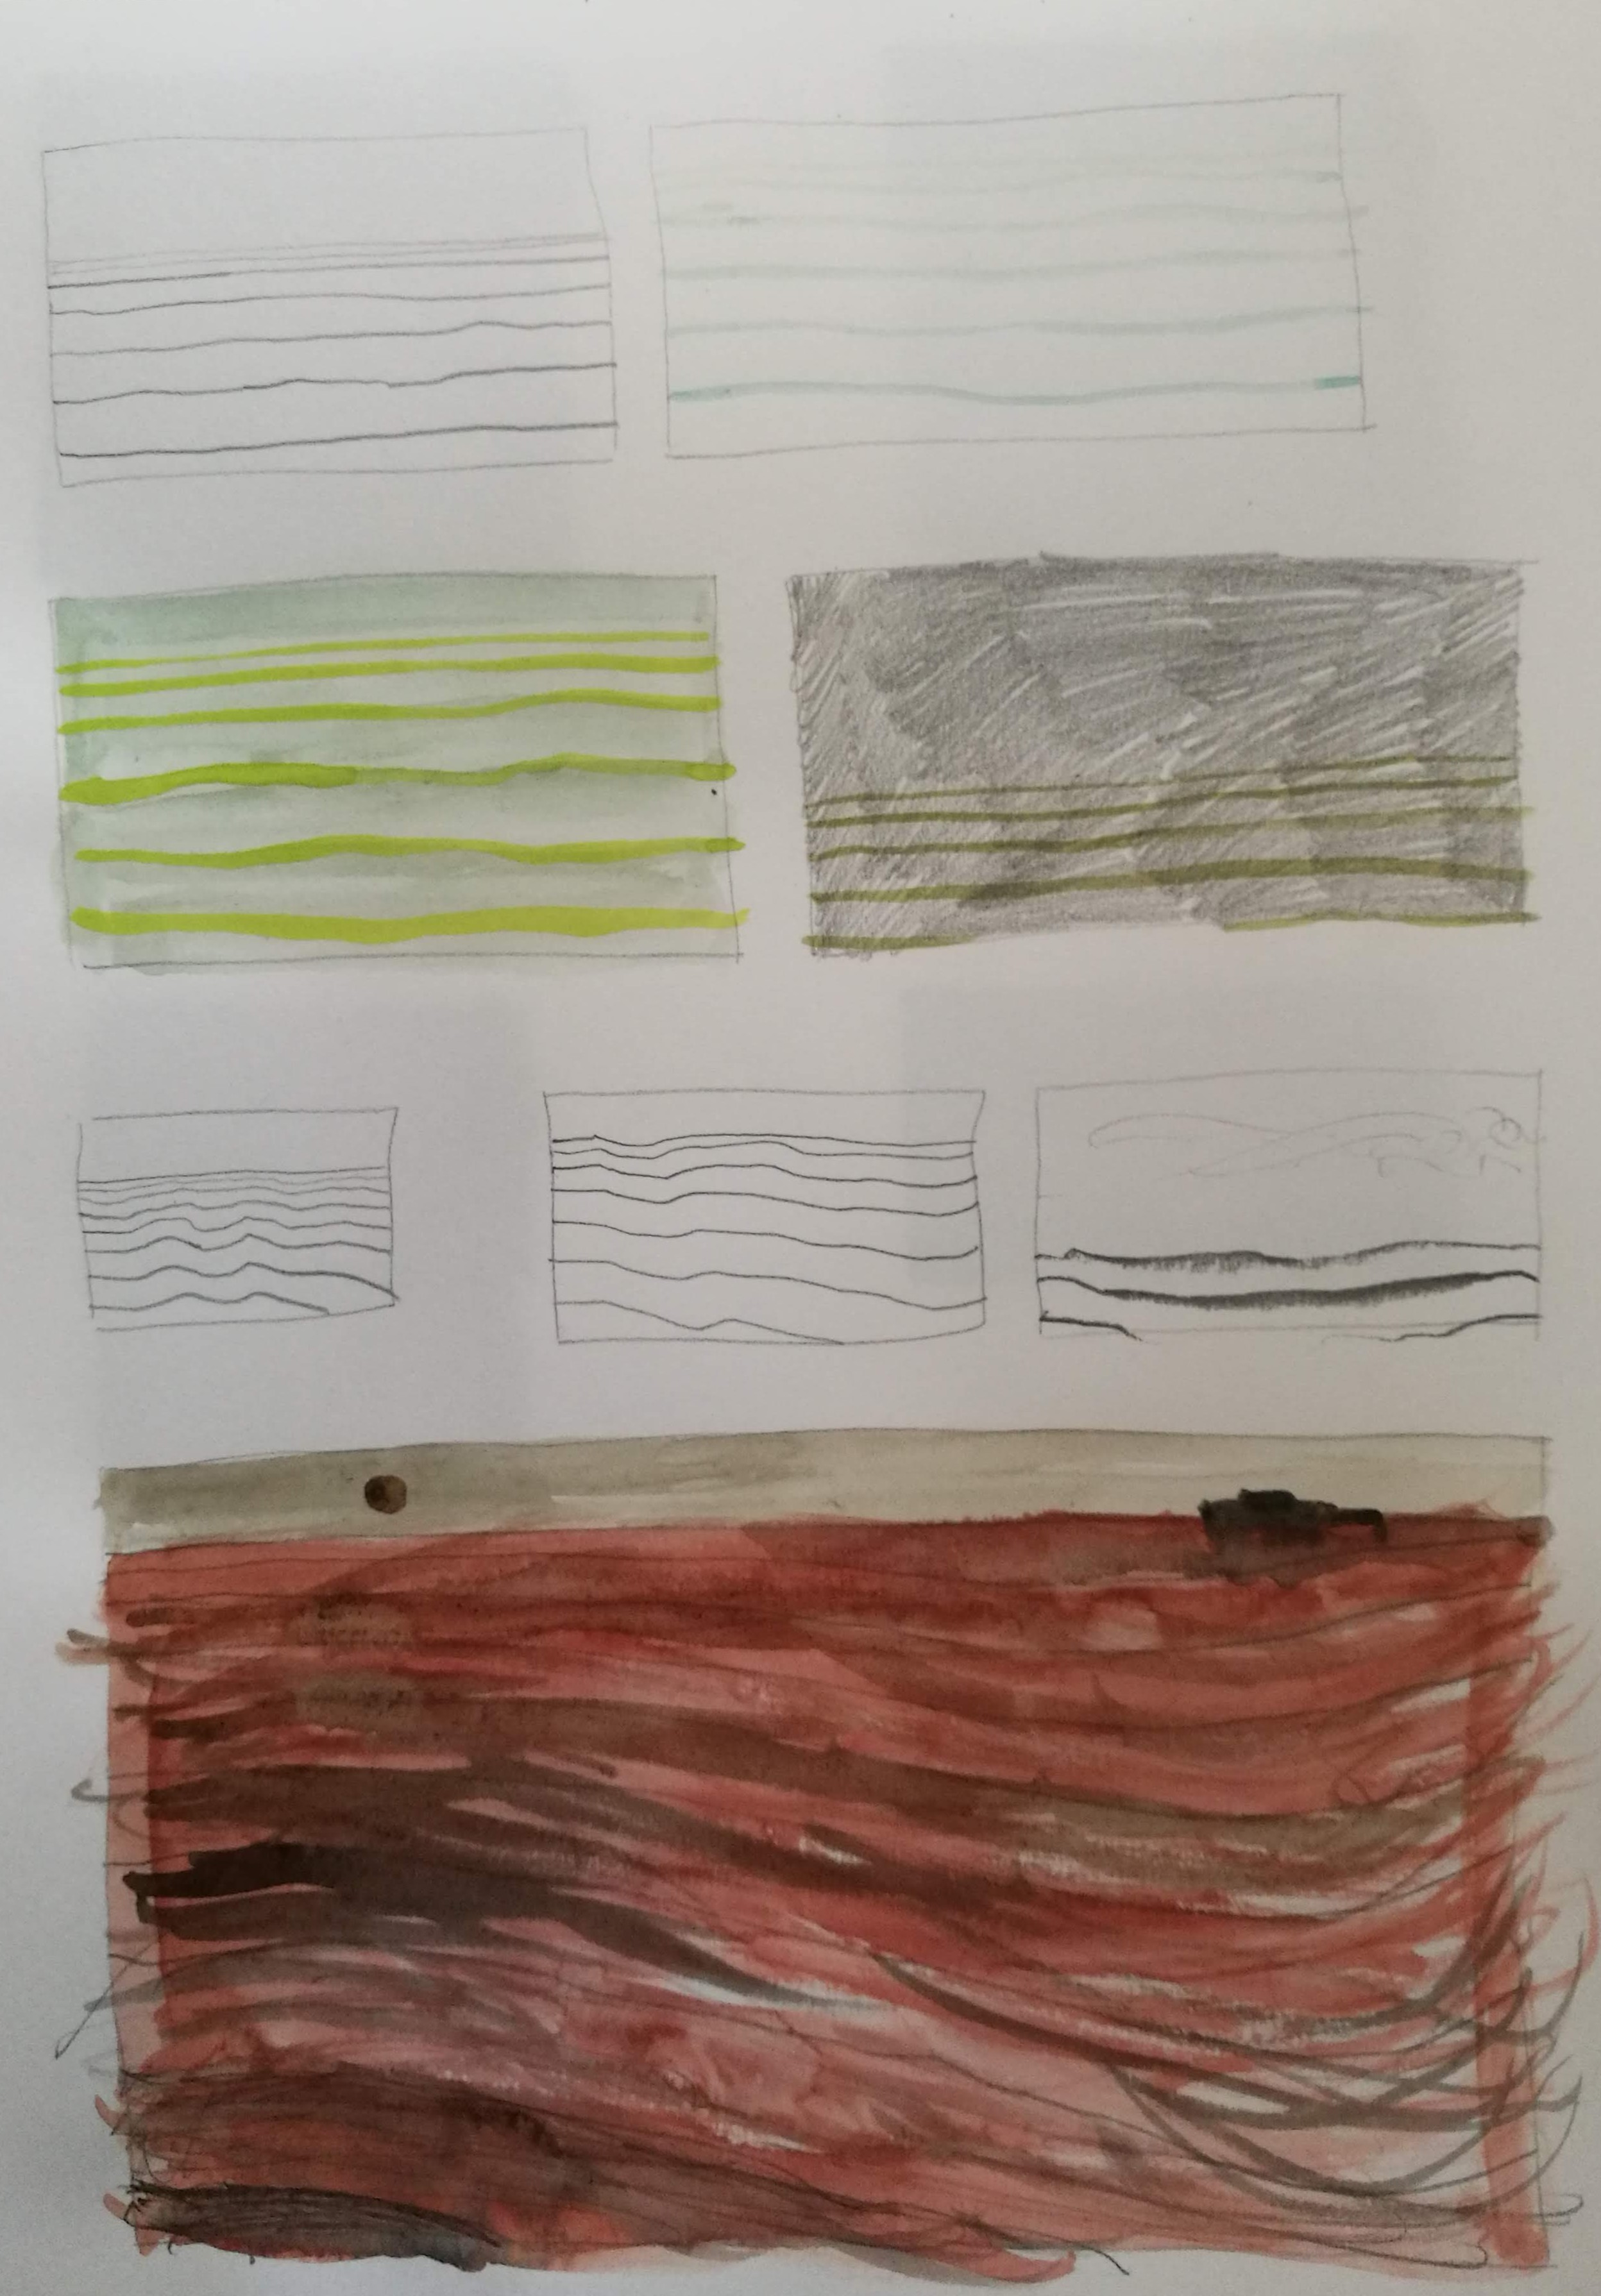 Lesson 1 'The Evocation of Memory': simple landscapes made using the simplest of drawn graphite lines. I then worked into these using watercolour and more graphite